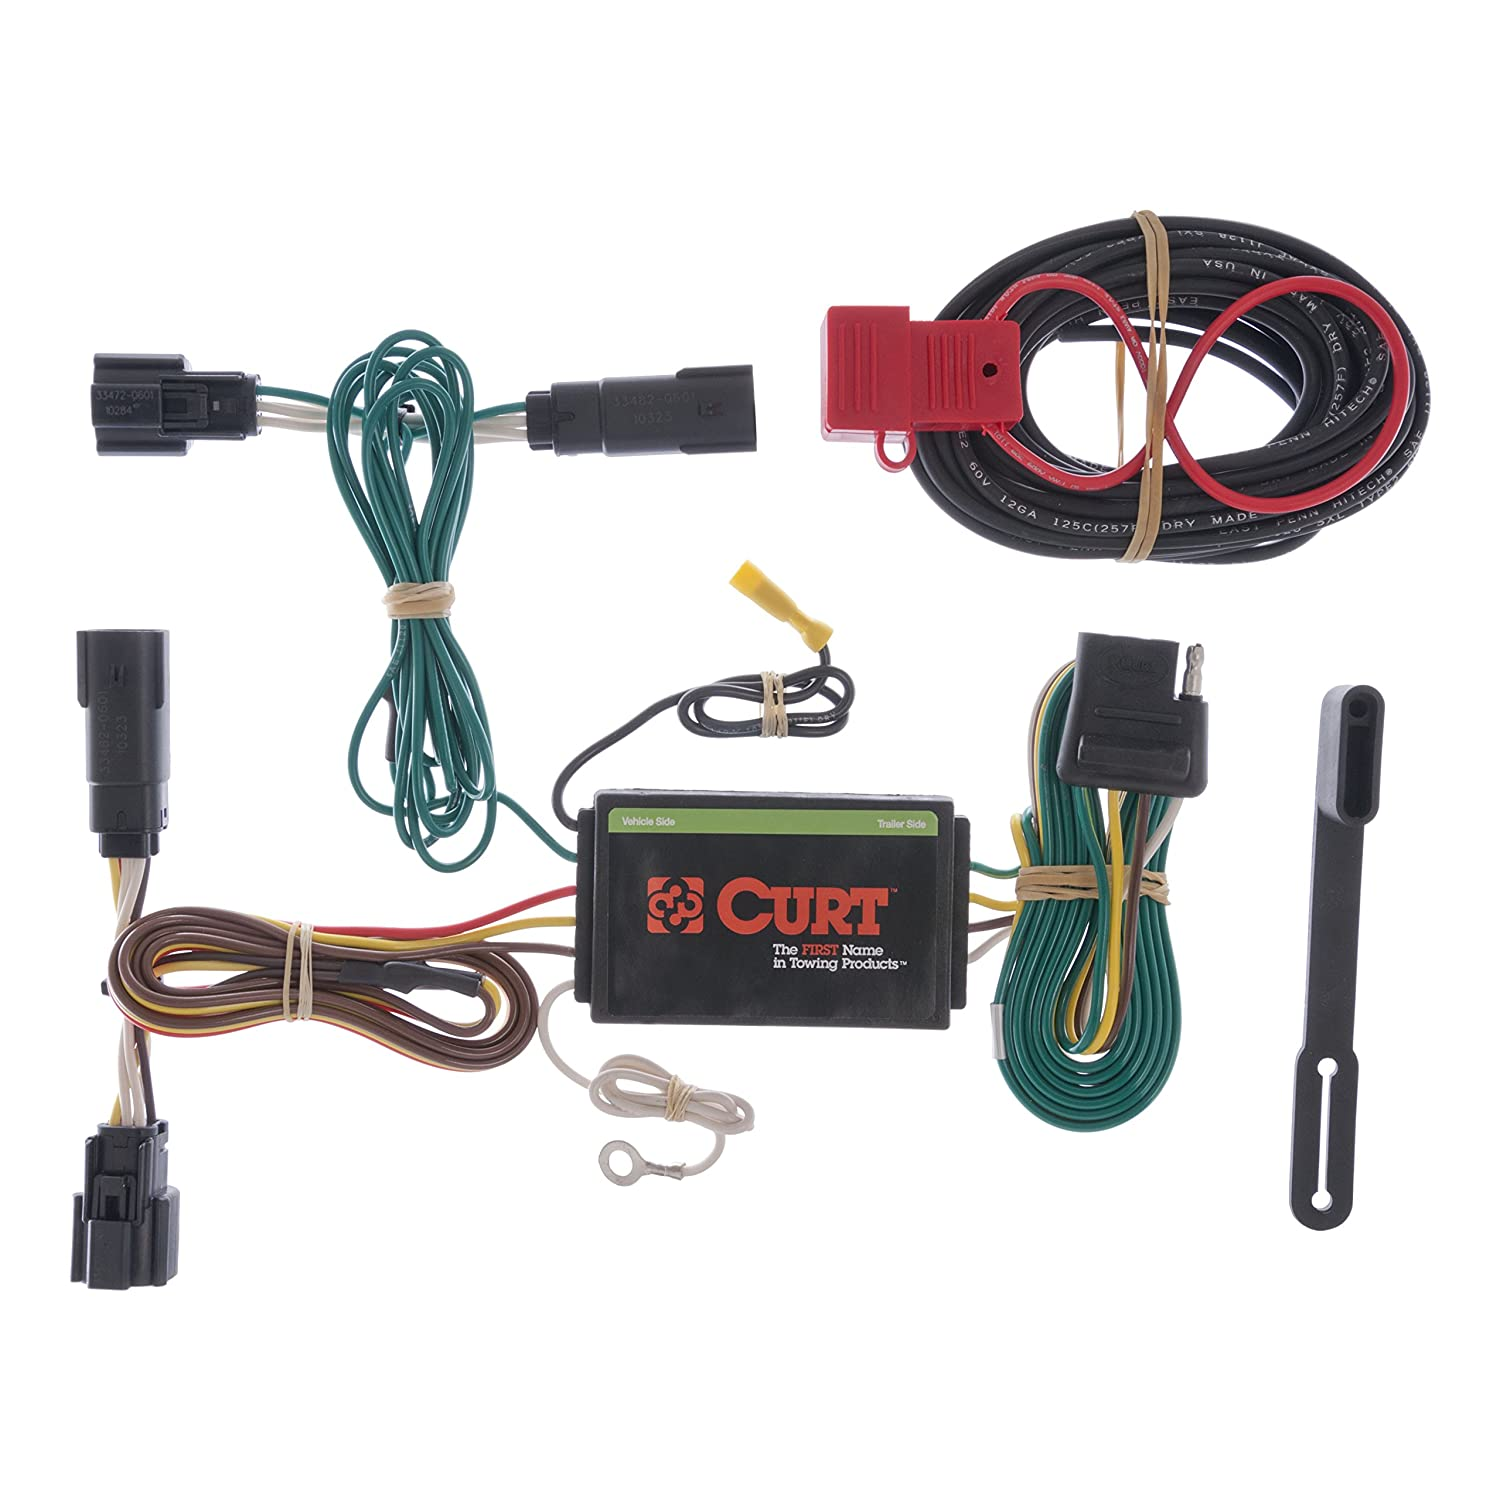 81ohhw2GXXL._SL1500_ amazon com curt 56120 custom wiring harness automotive  at n-0.co